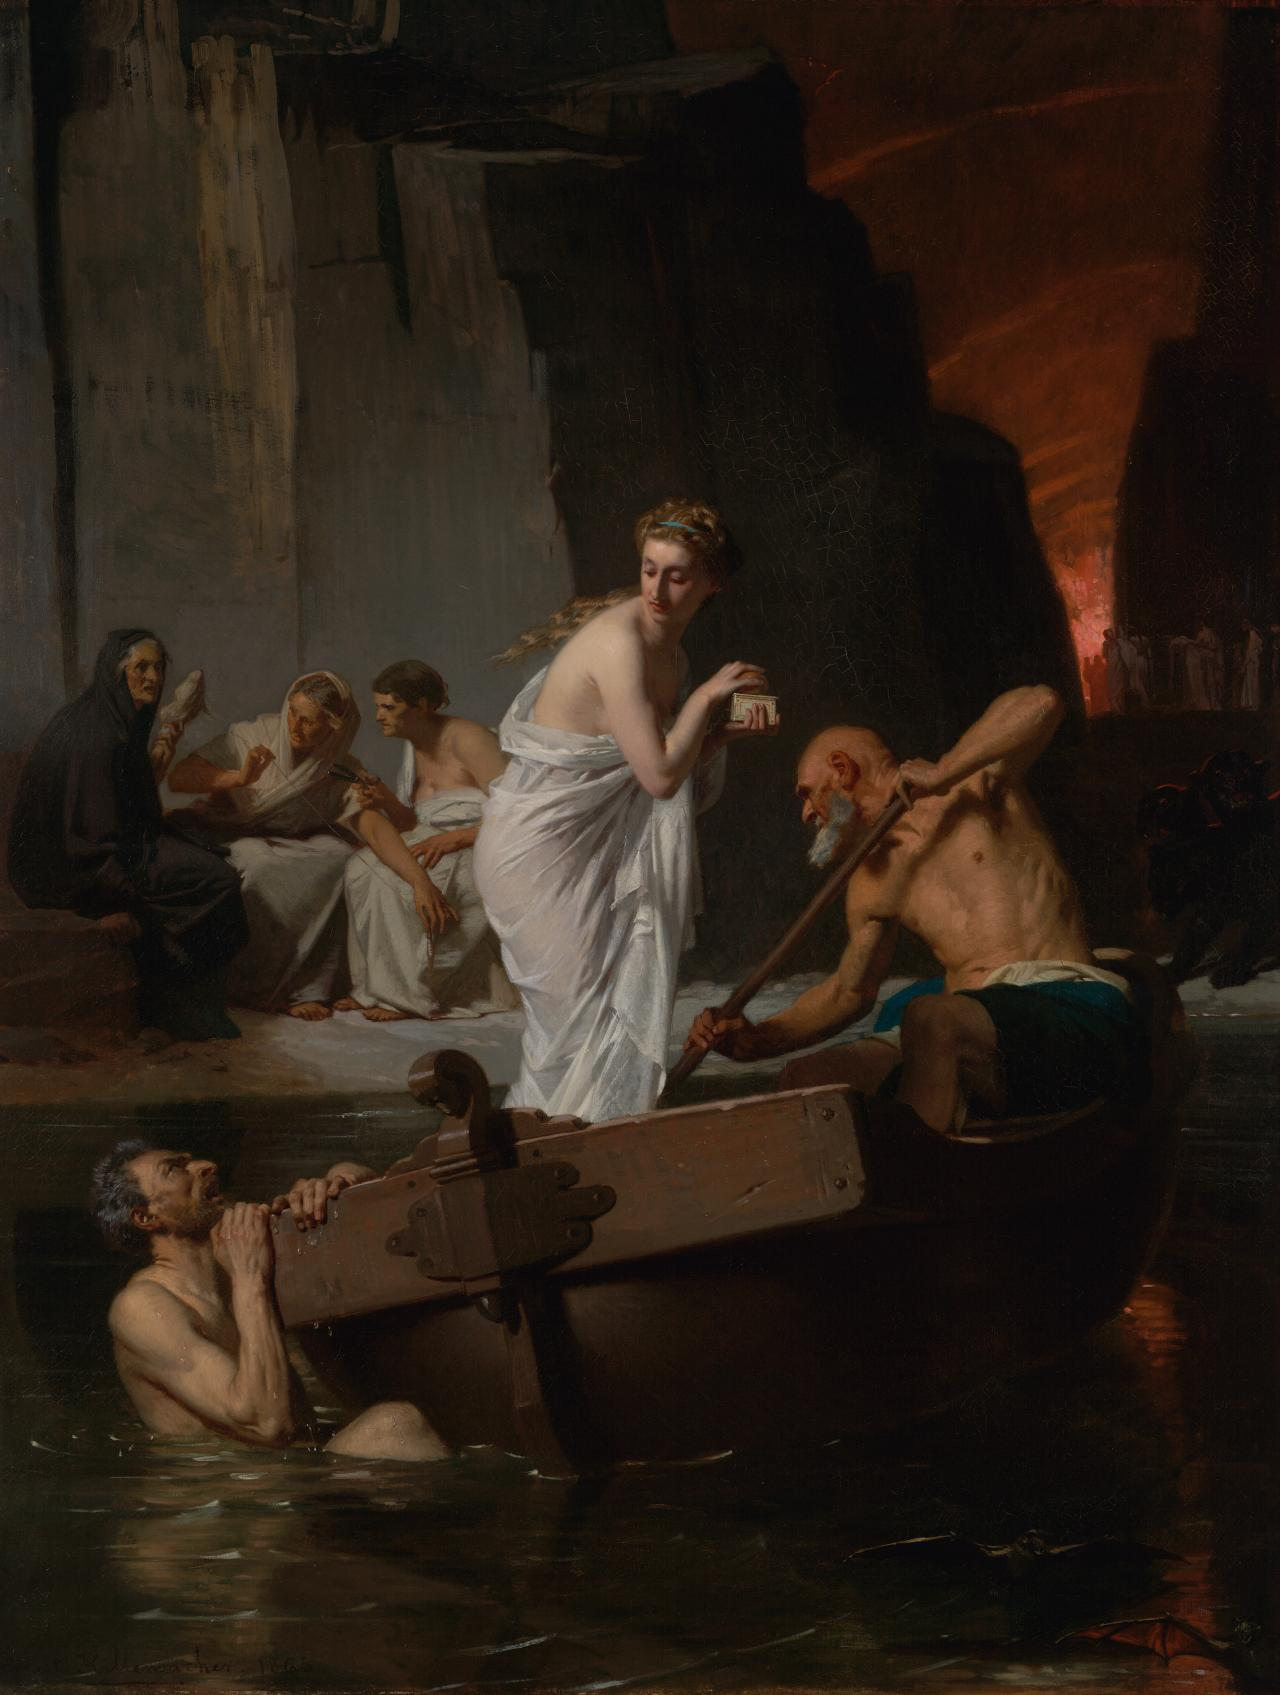 Psyche in the Underworld